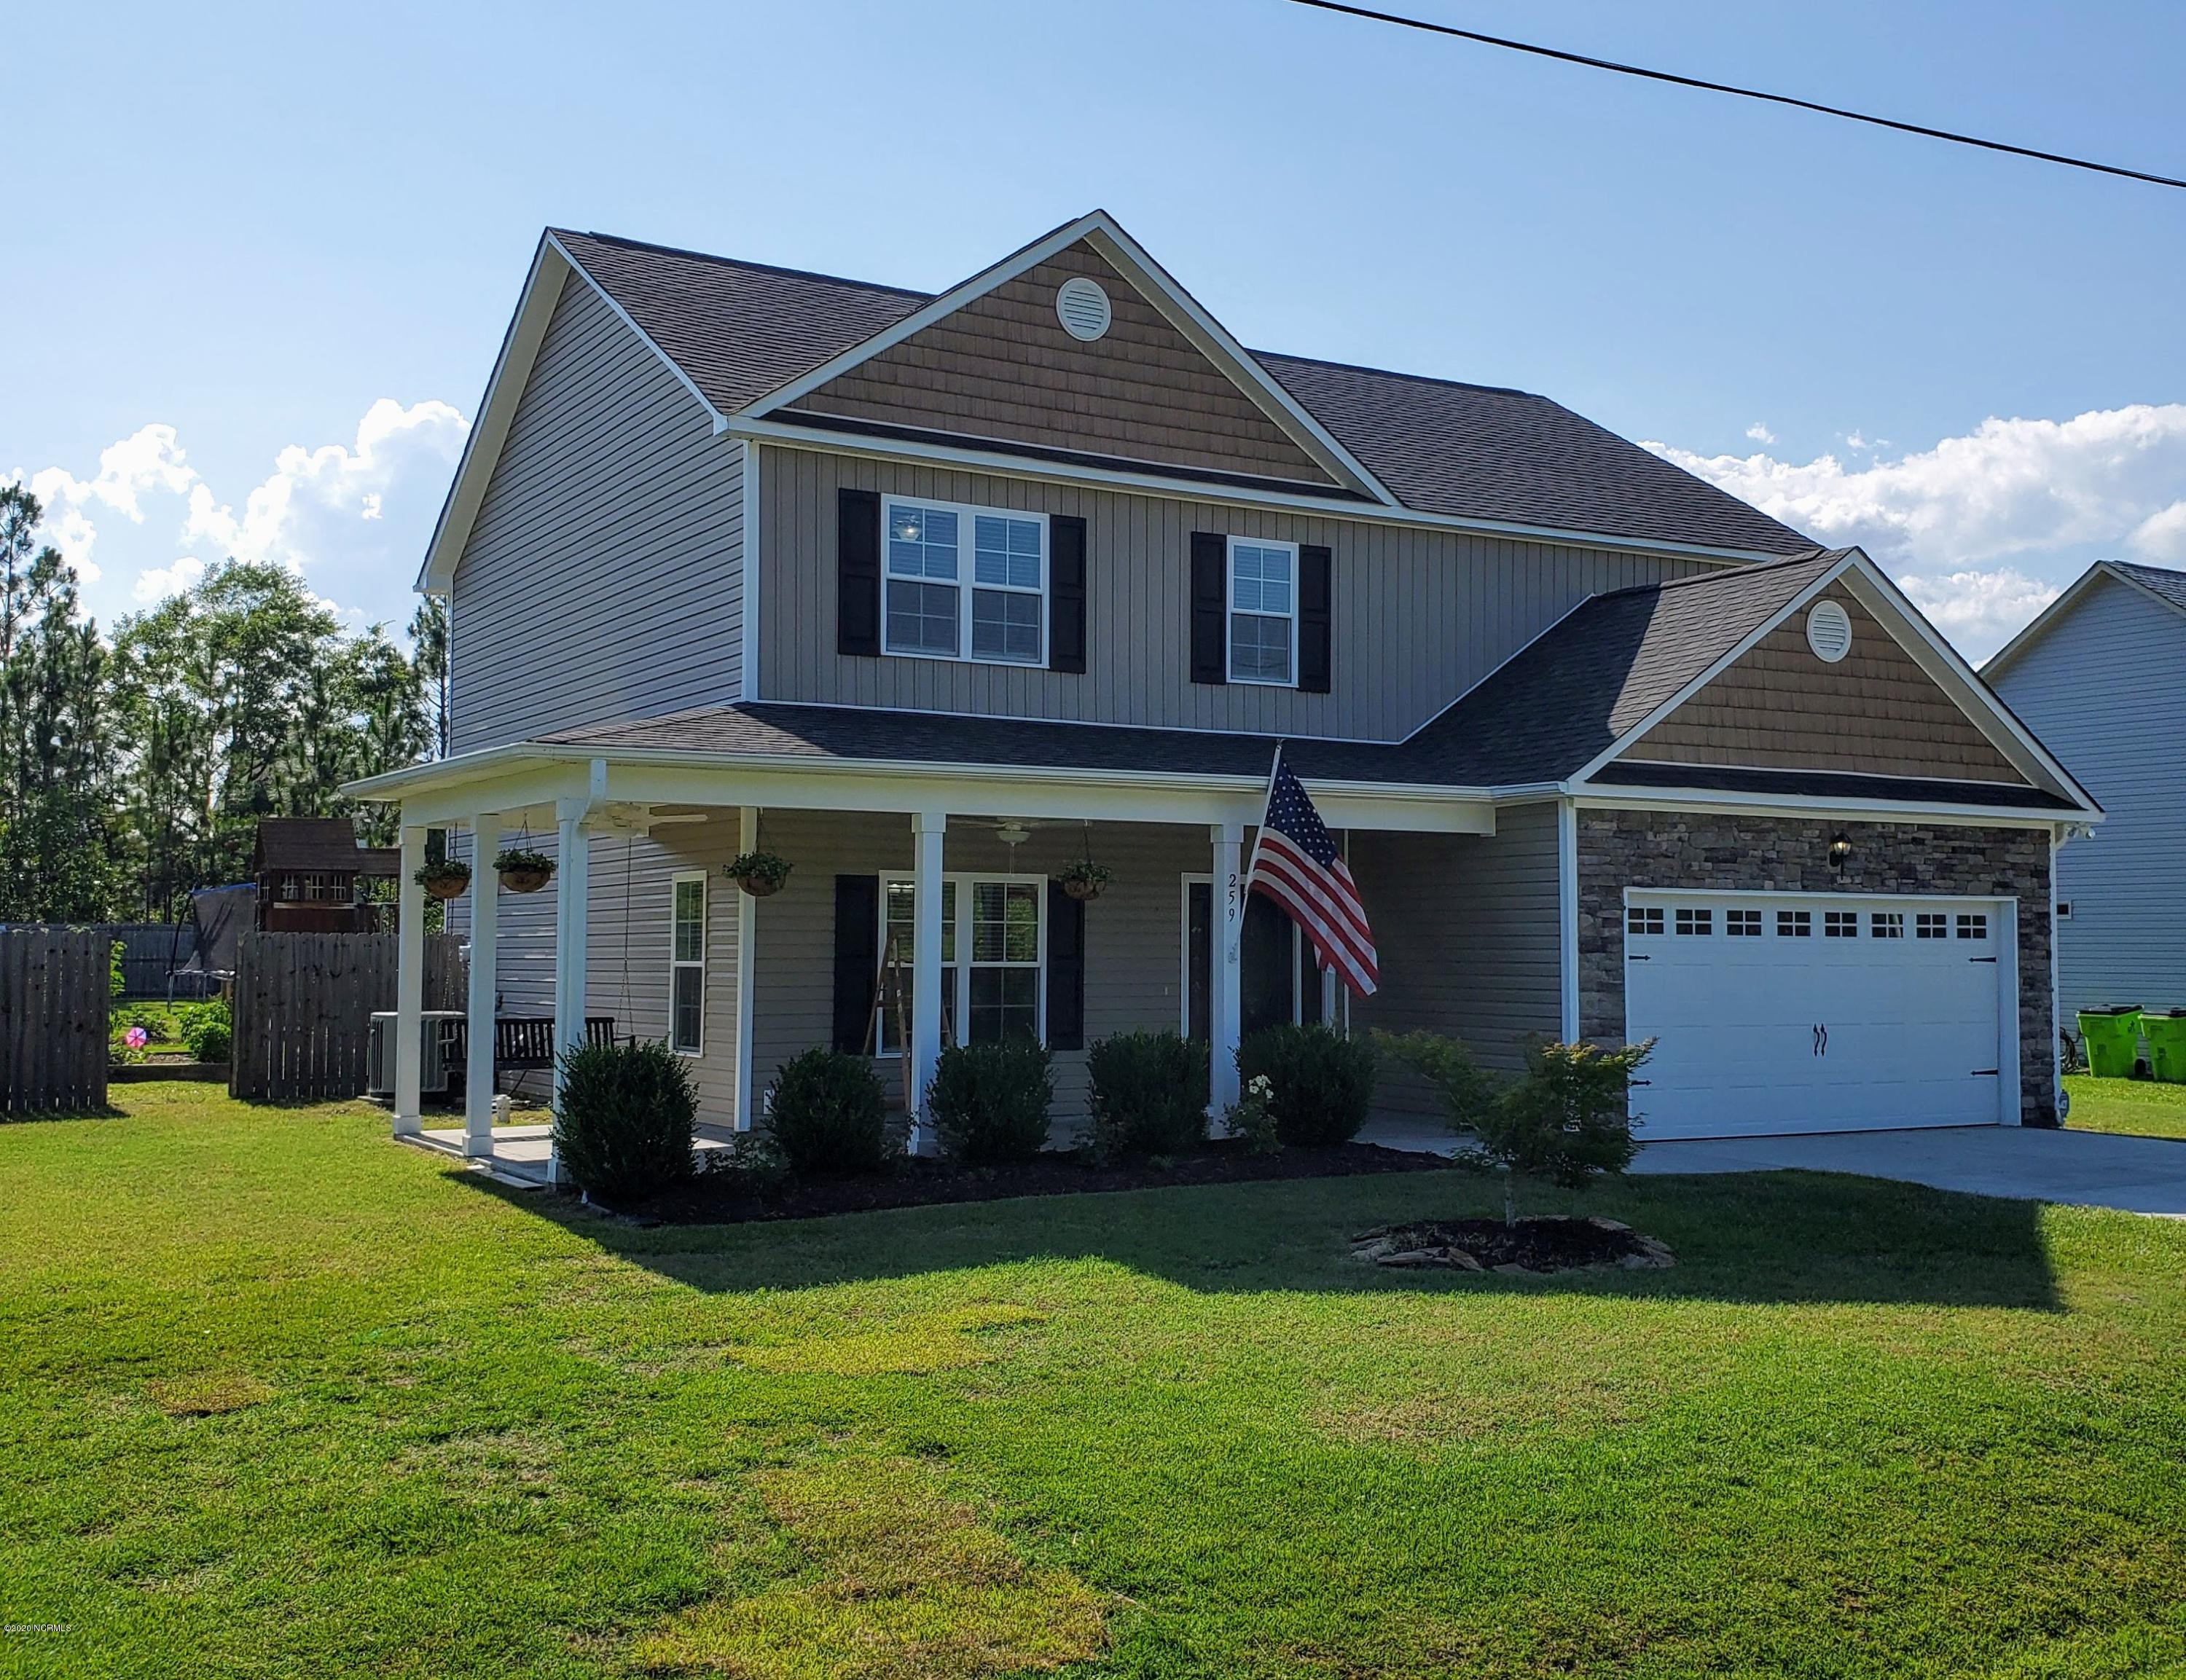 259 Ivybridge Drive, Hubert, North Carolina 28539, 3 Bedrooms Bedrooms, ,2 BathroomsBathrooms,Residential,For Sale,Ivybridge,100226851